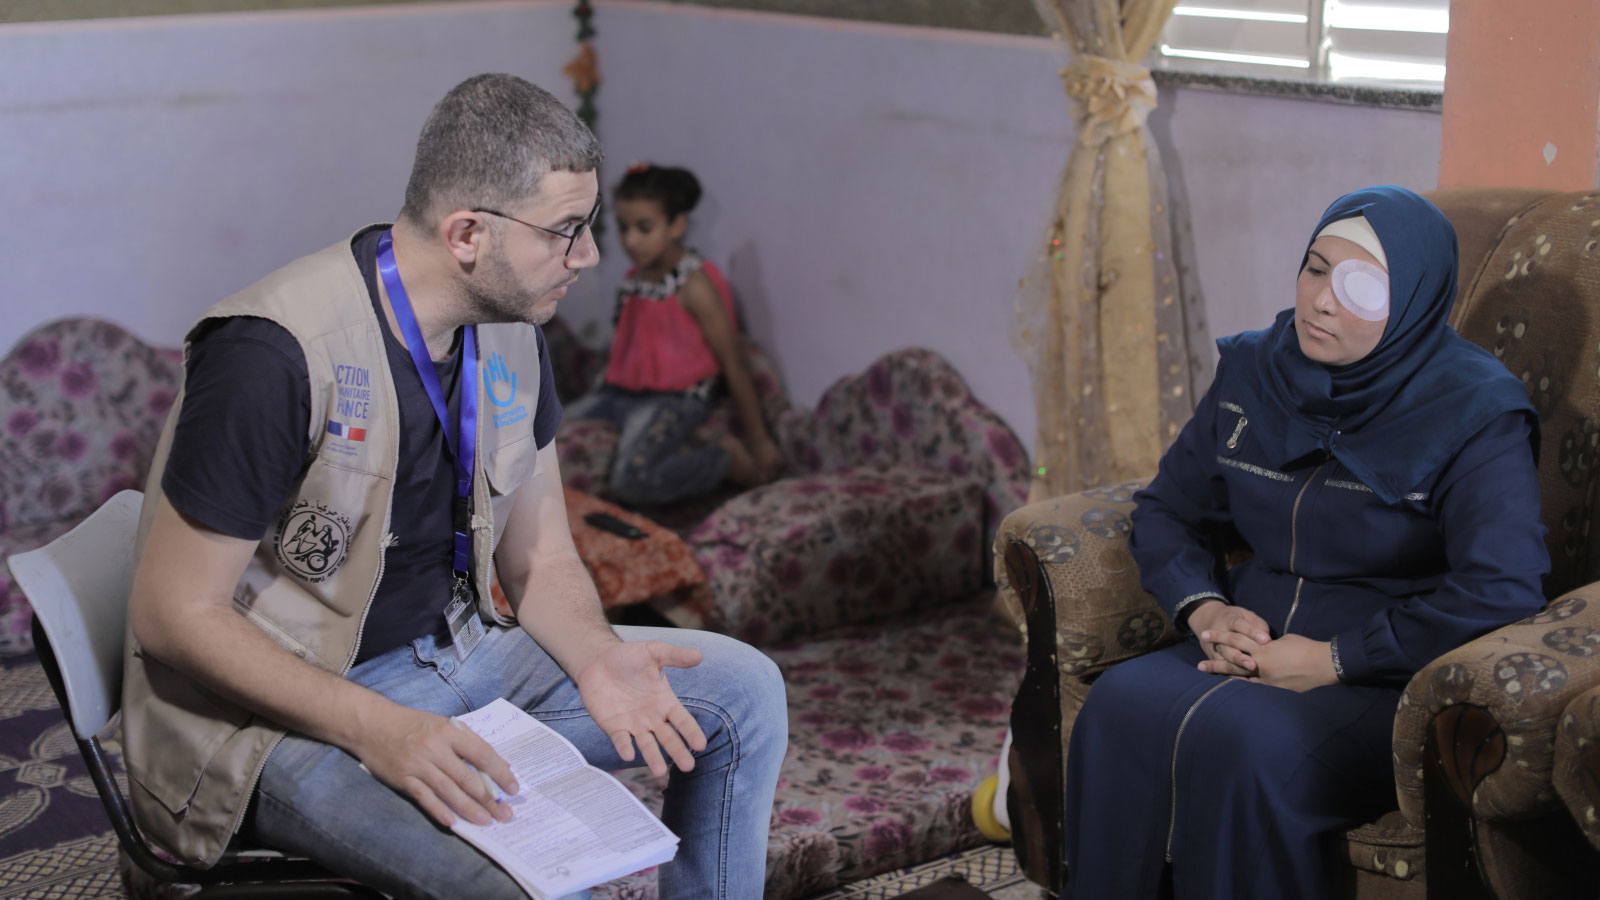 Gaza Emergency | First responder volunteer loses her eyesight